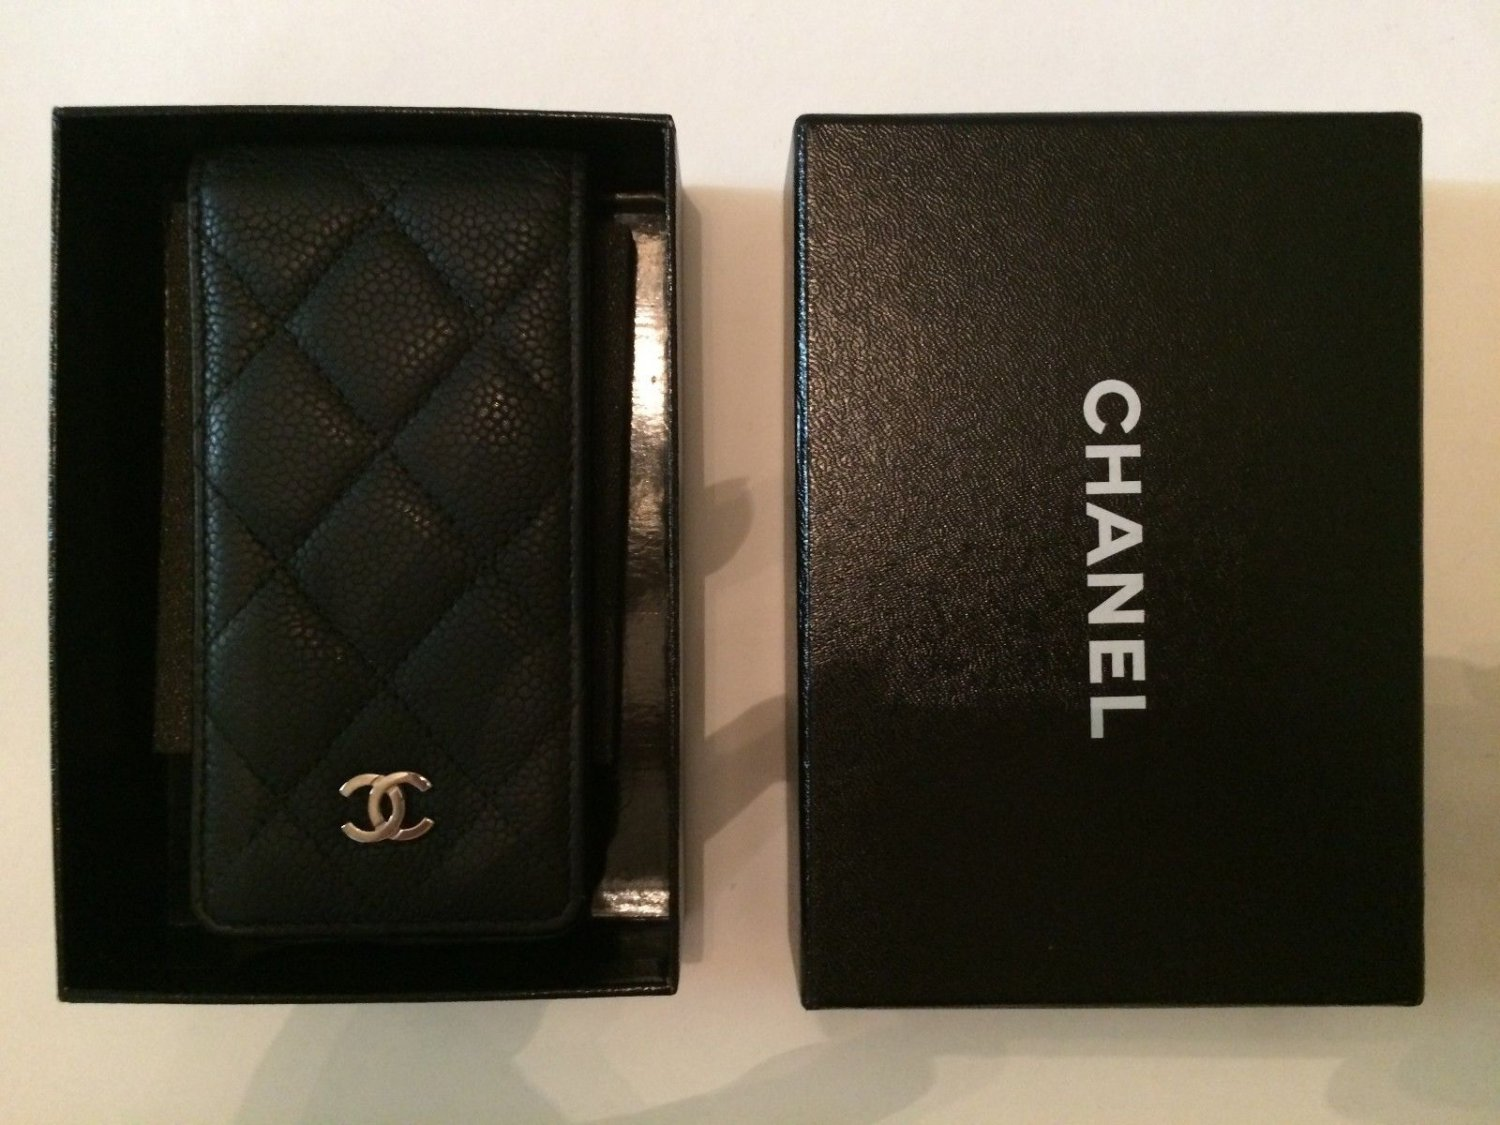 new product ed0ff 2bff9 Chanel Black Quilted Caviar Leather iPhone 5/5s Flip Case Pouch Card ...